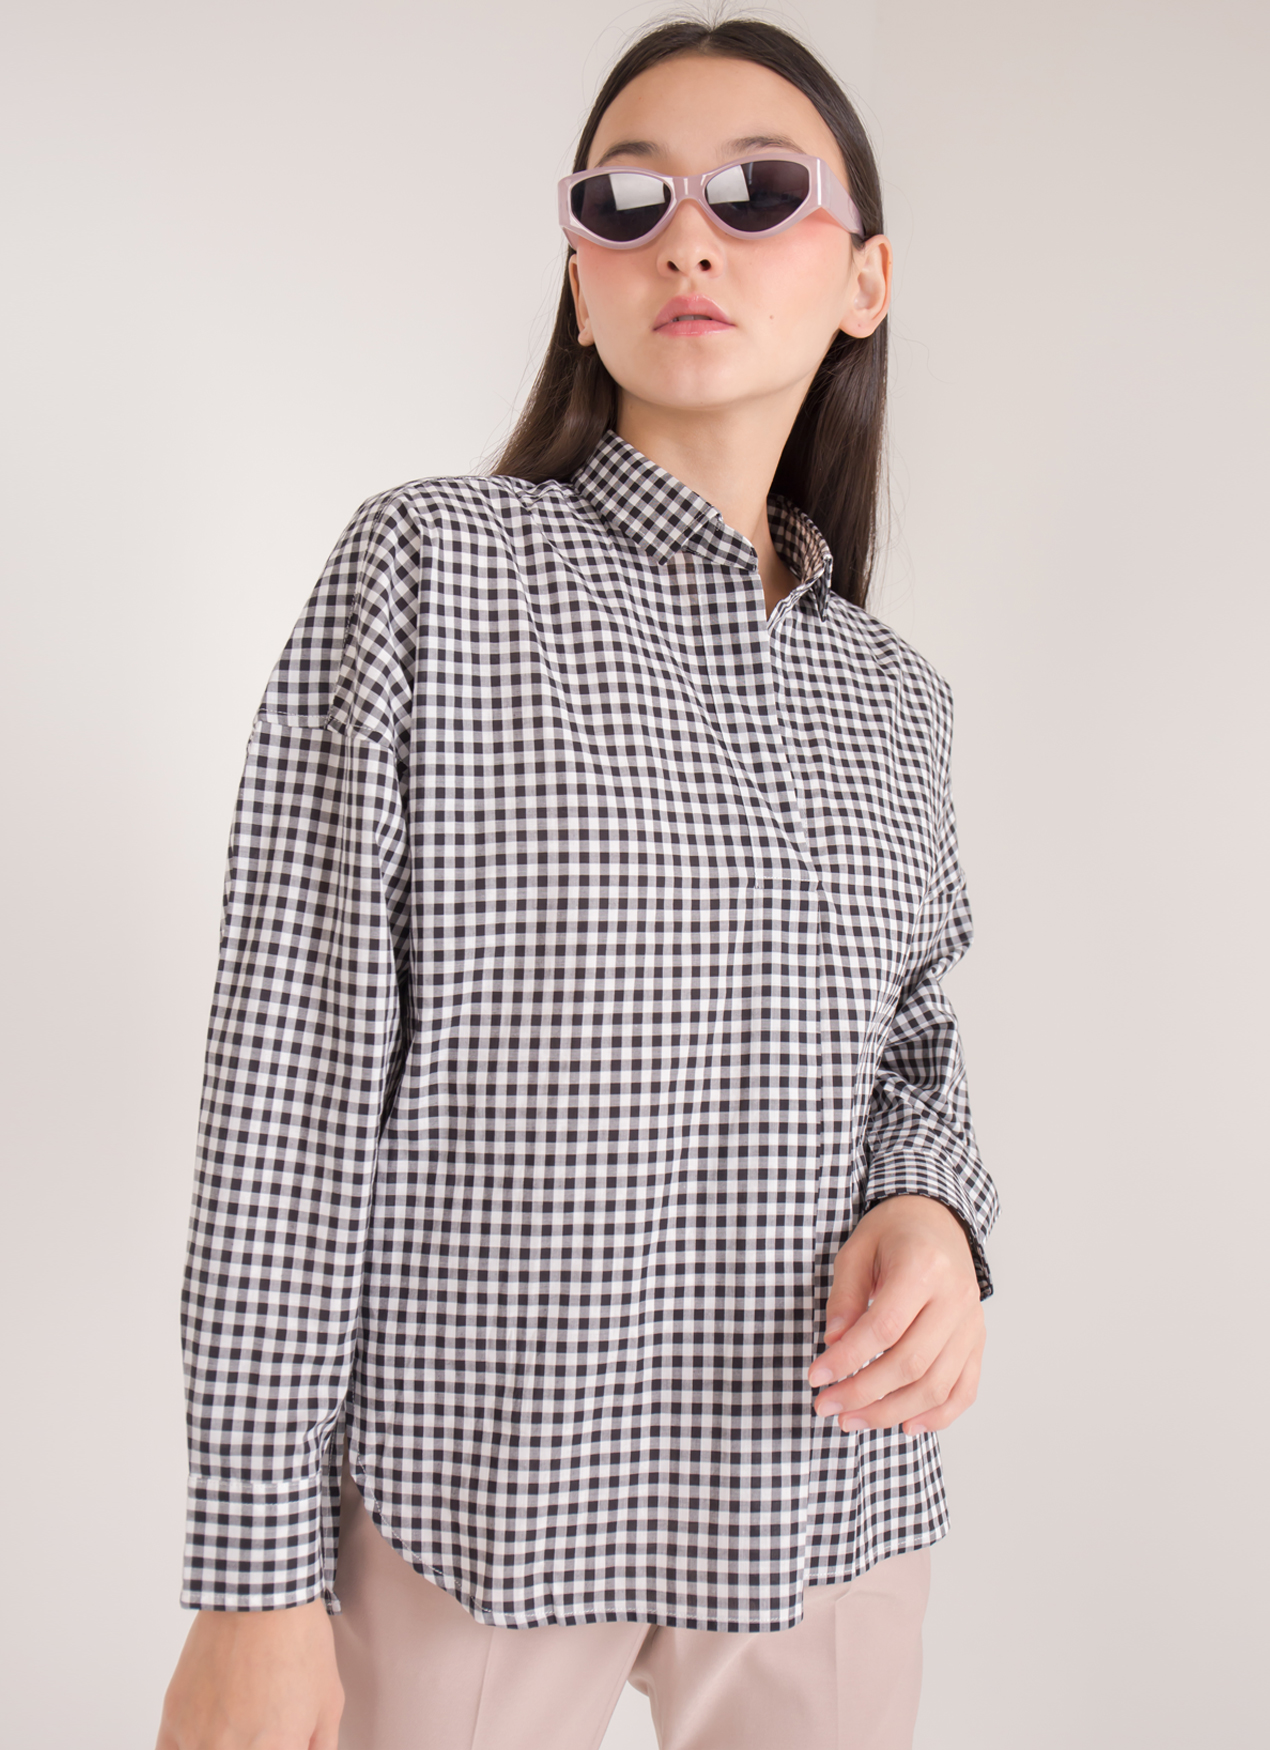 Earth, Music & Ecology Veronica Top - Check Black